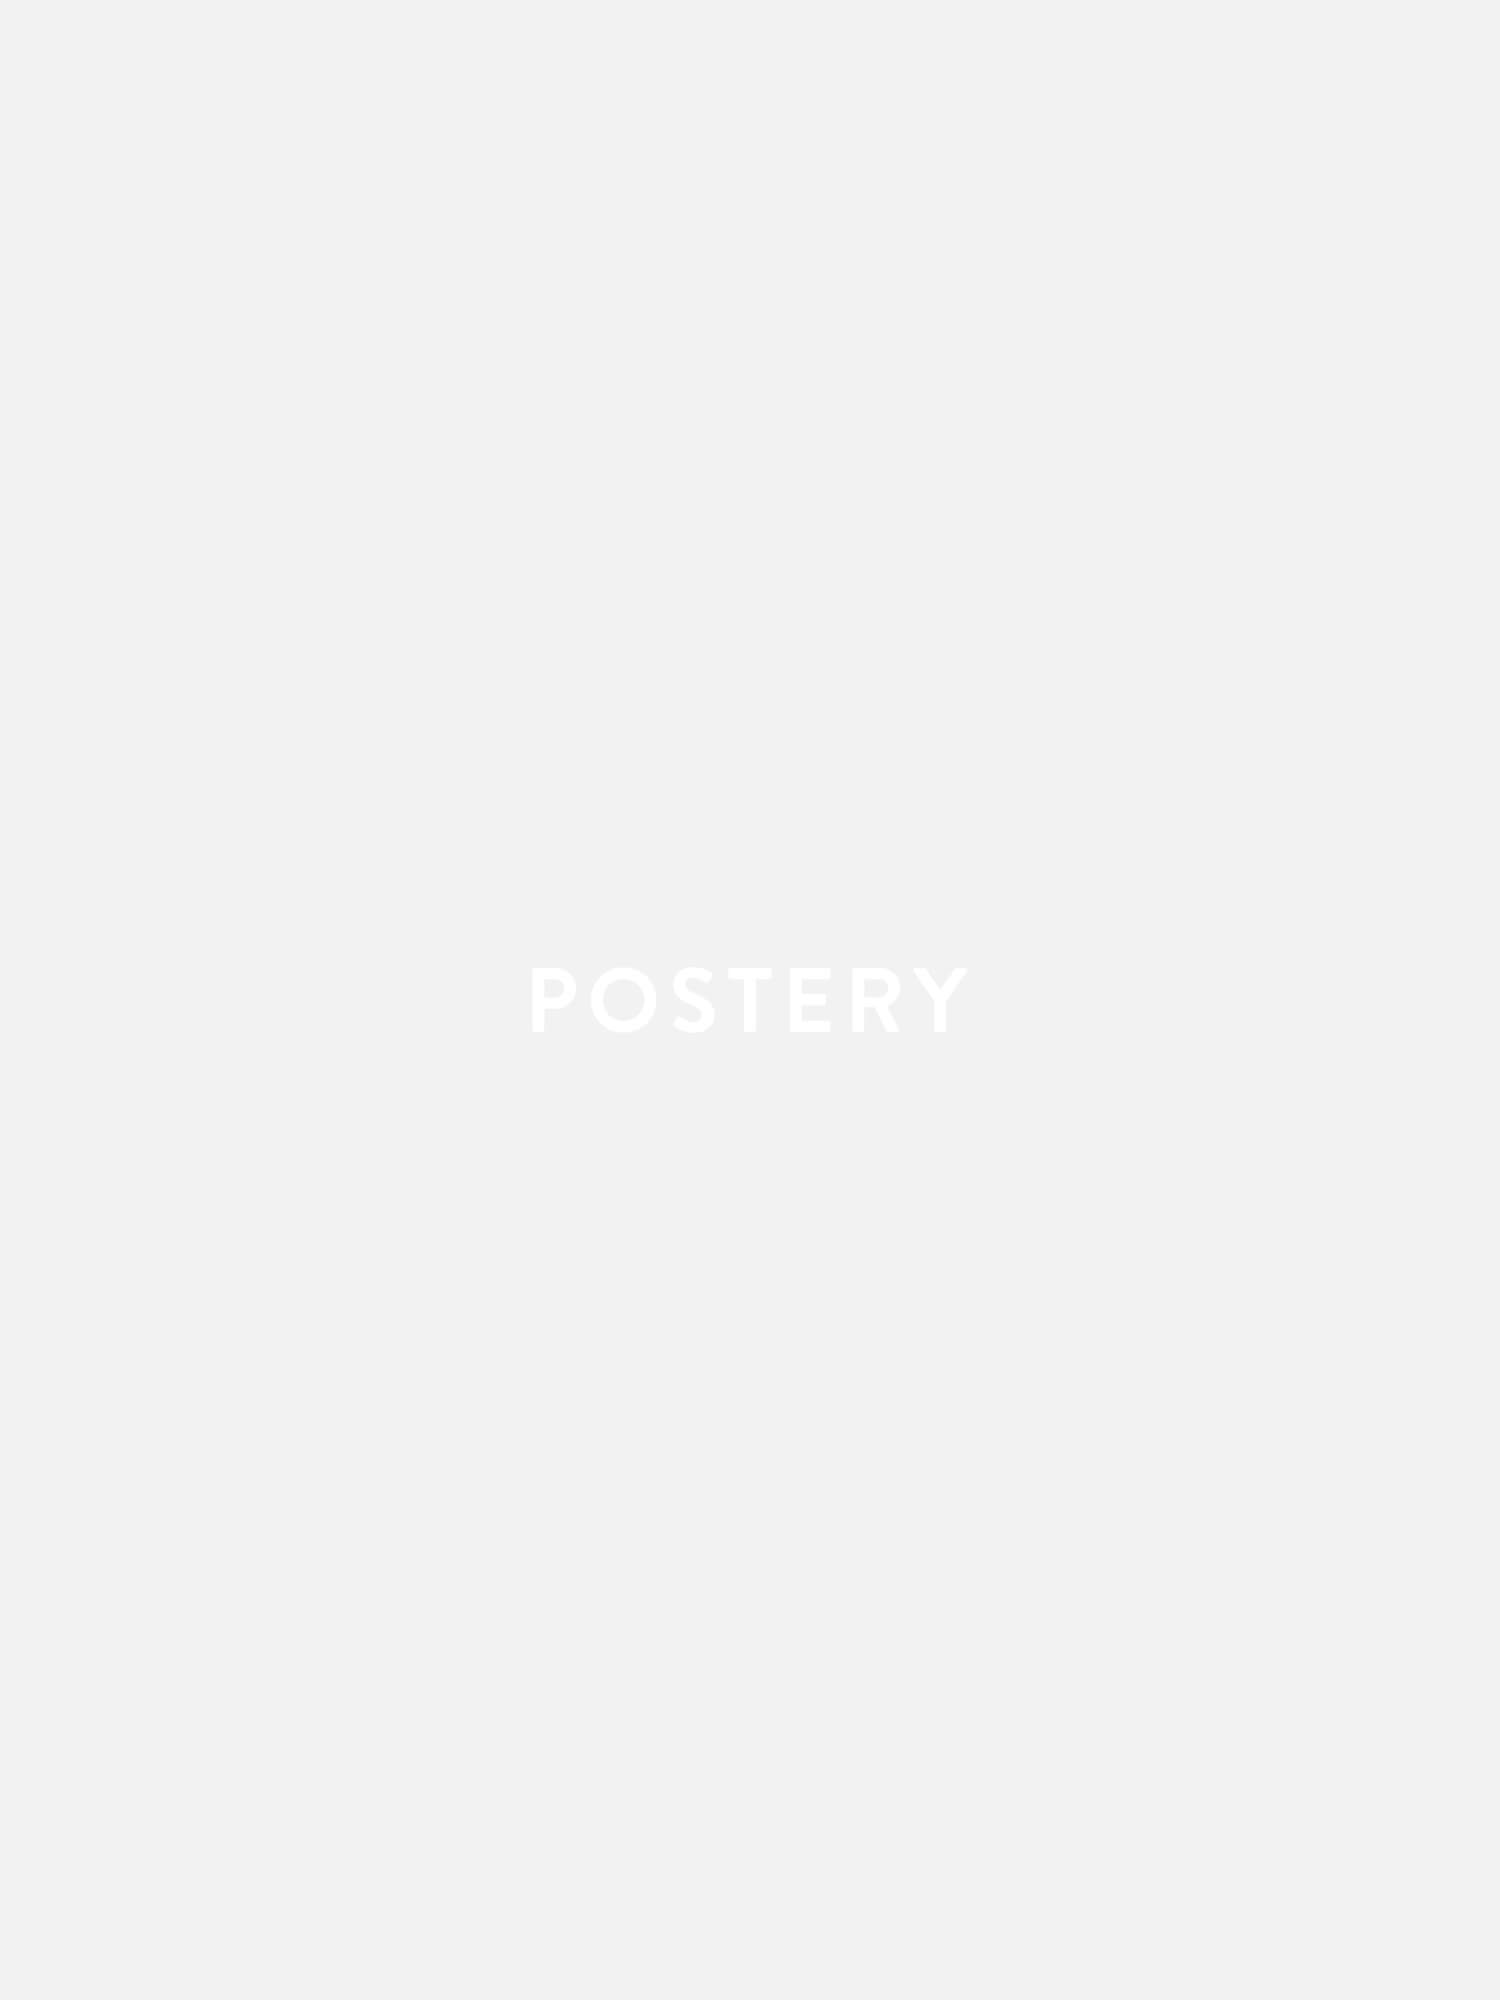 Tropical Palm Leaf no.2 Poster